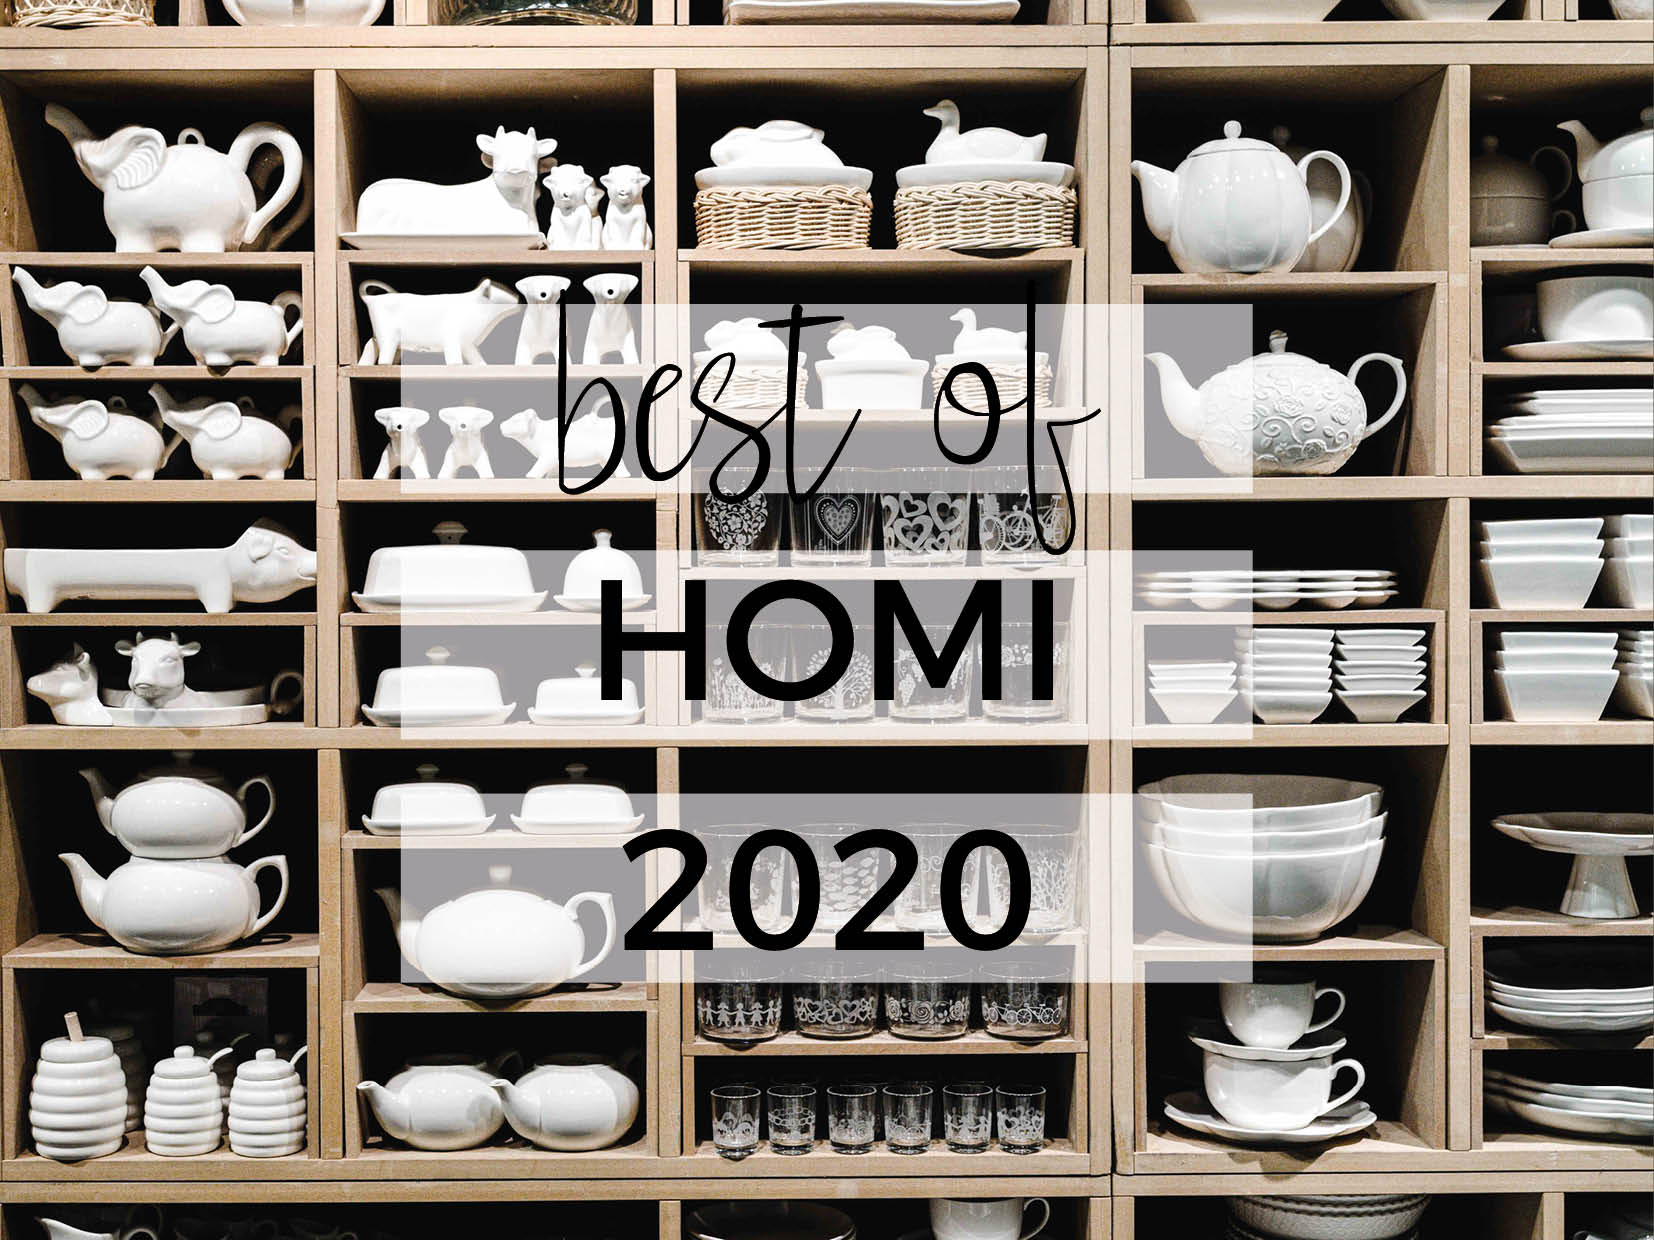 homi 2020 best of